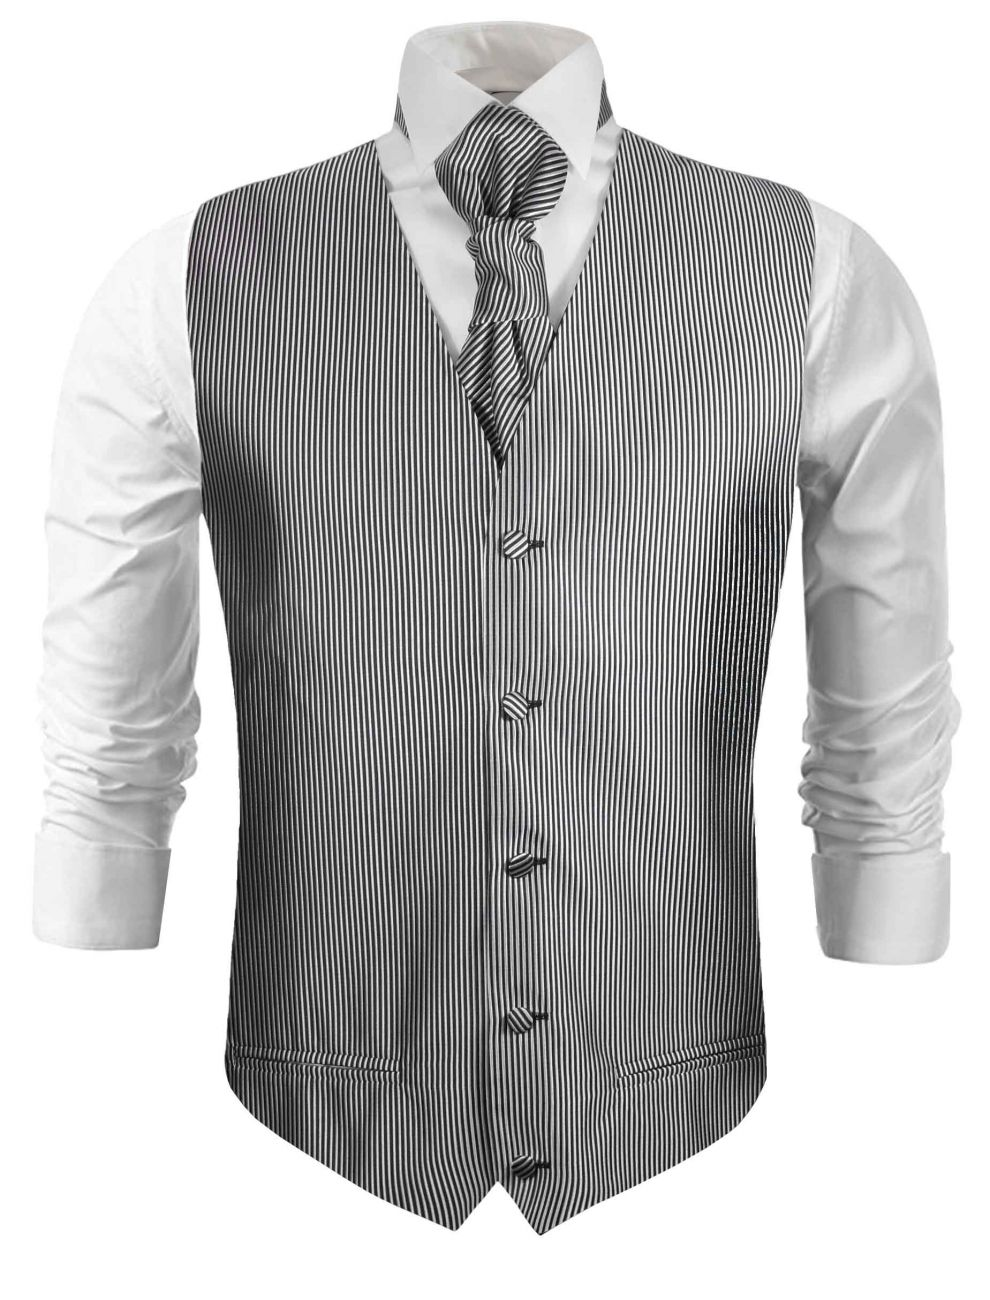 Silver wedding vest striped waistcoat with cravat